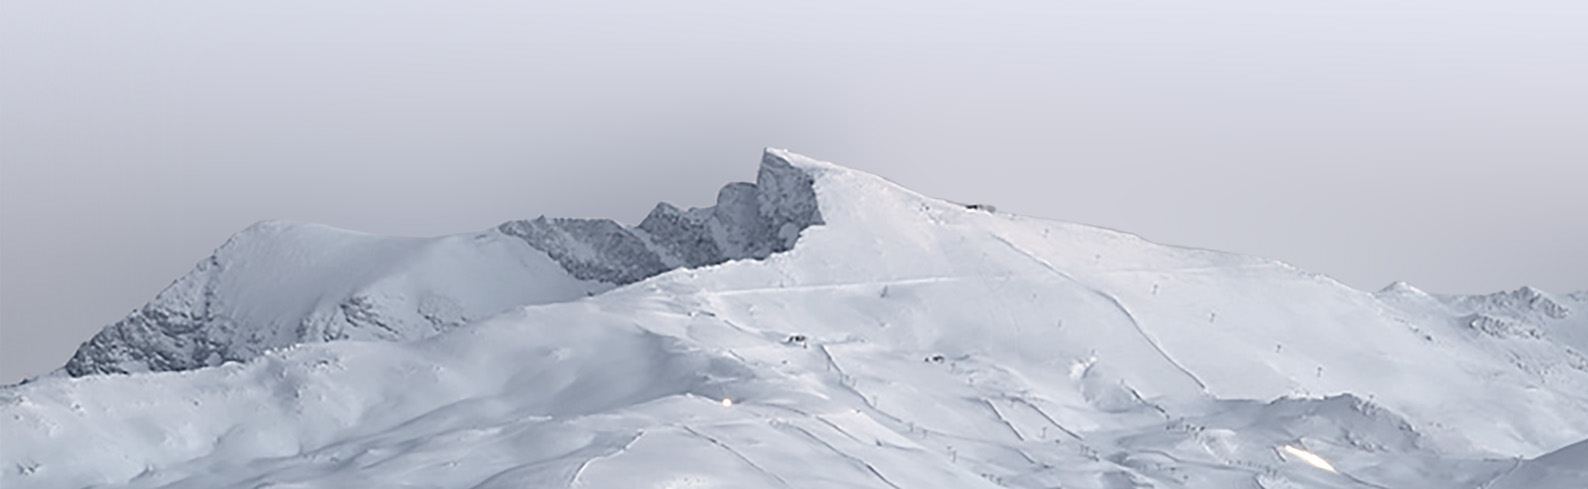 The iconic peak in the Sierra Nevada that served as design inspiration.